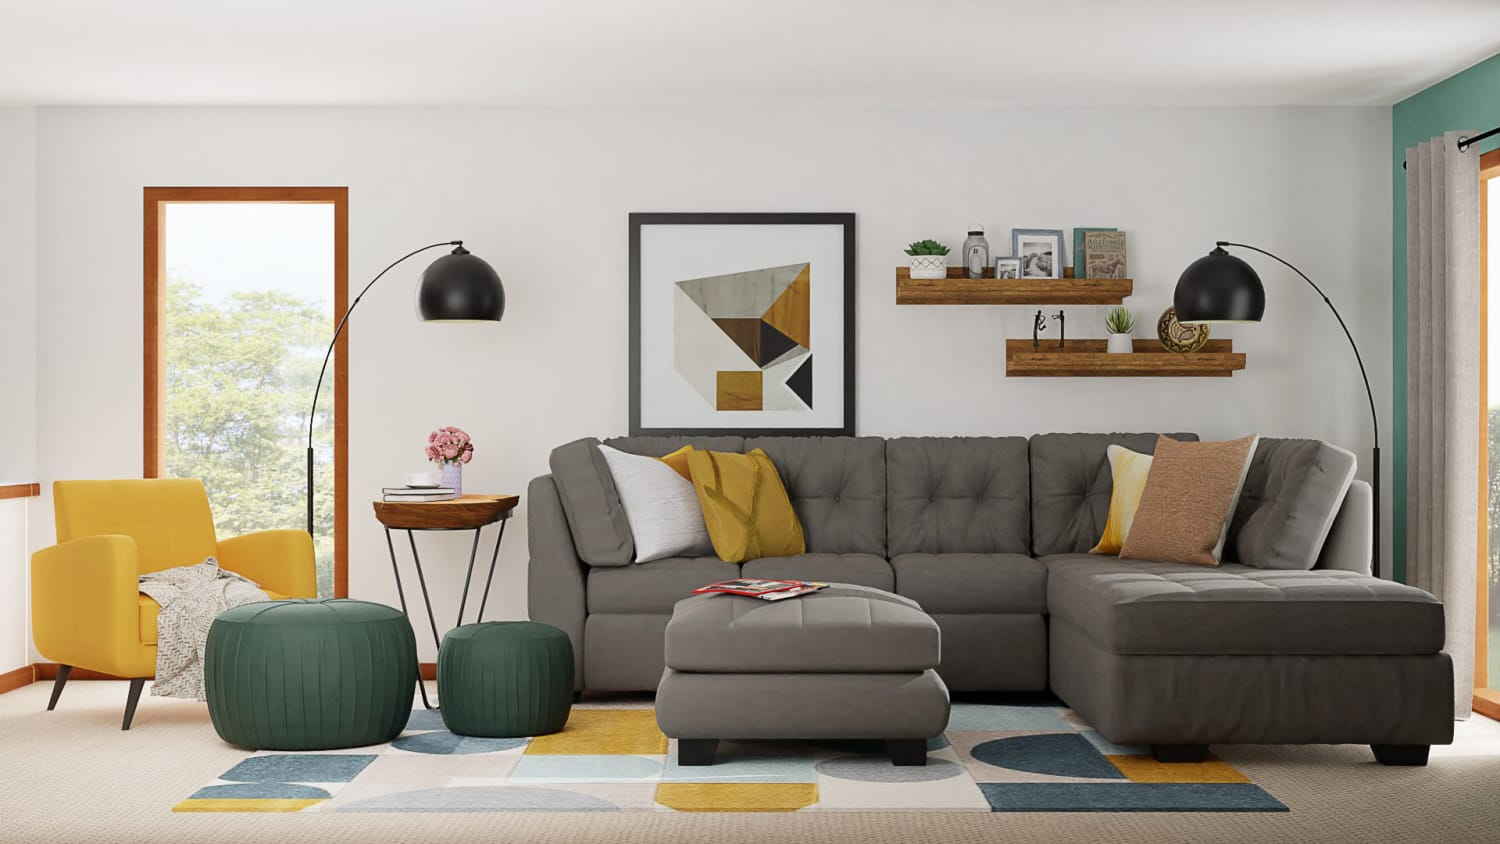 Mid-Century Living Room with Retro Vibes Design By Spacejoy